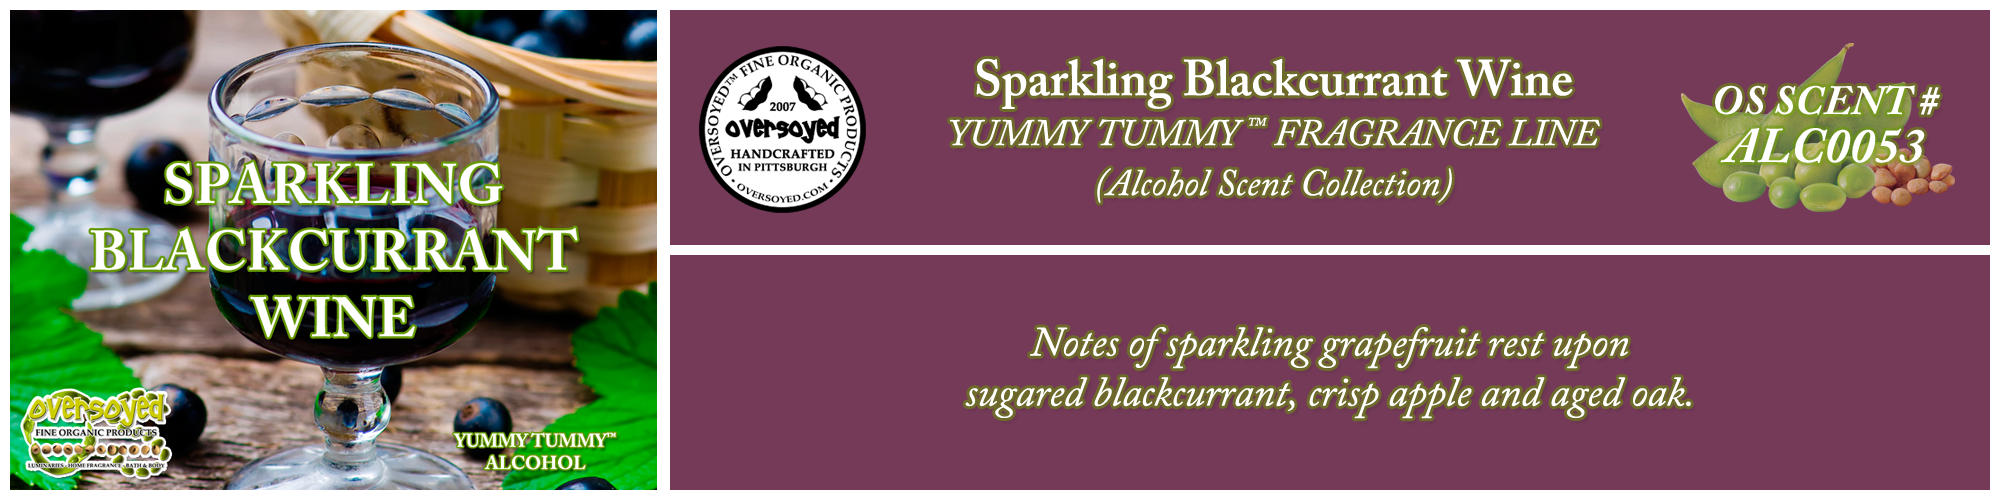 Sparkling Blackcurrant Wine Handcrafted Products Collection